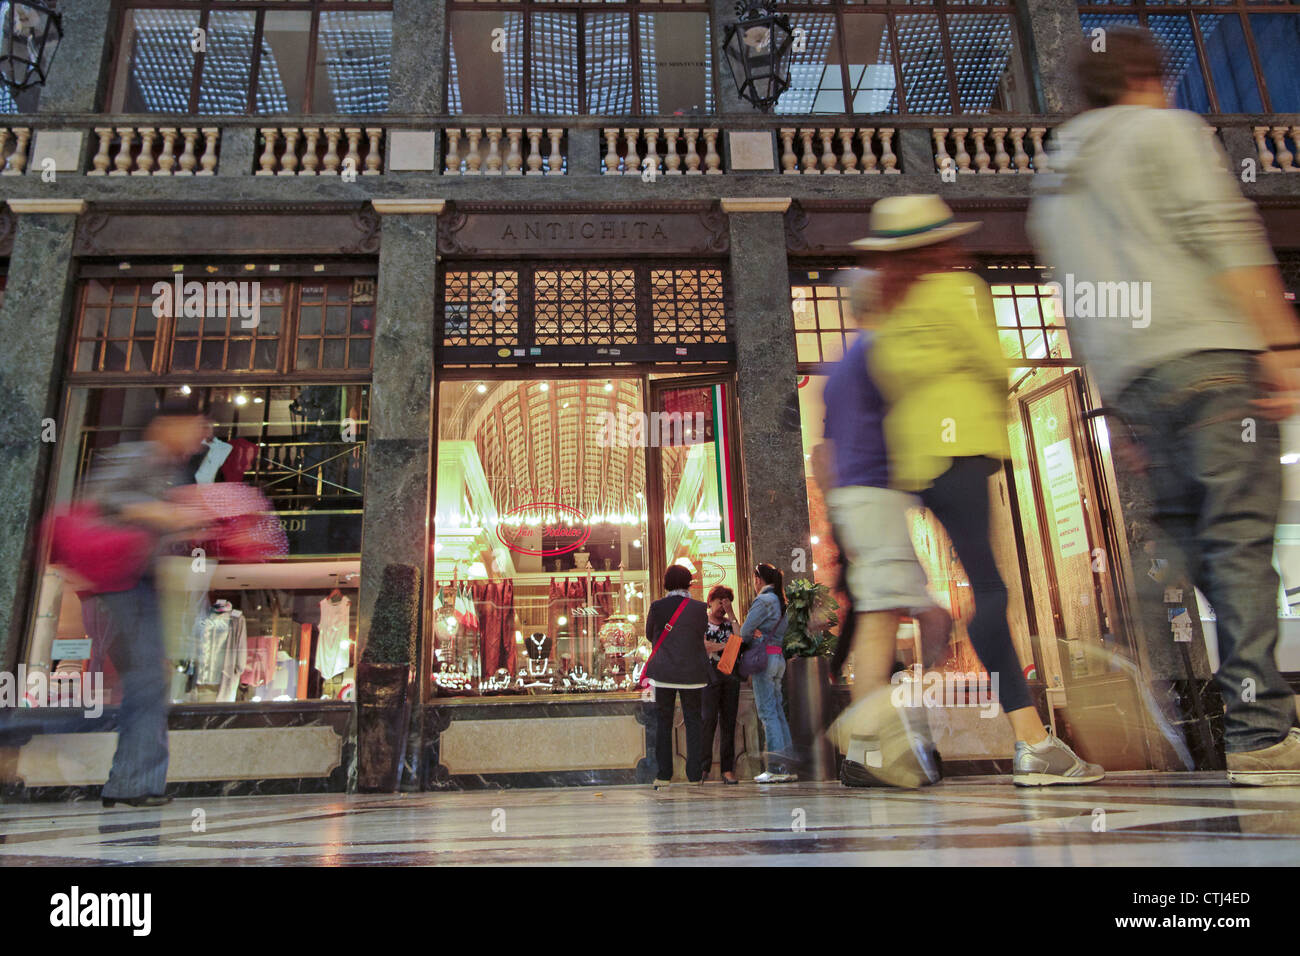 Shopping Passage, old city center of Turin Piedmont, Italy - Stock Image